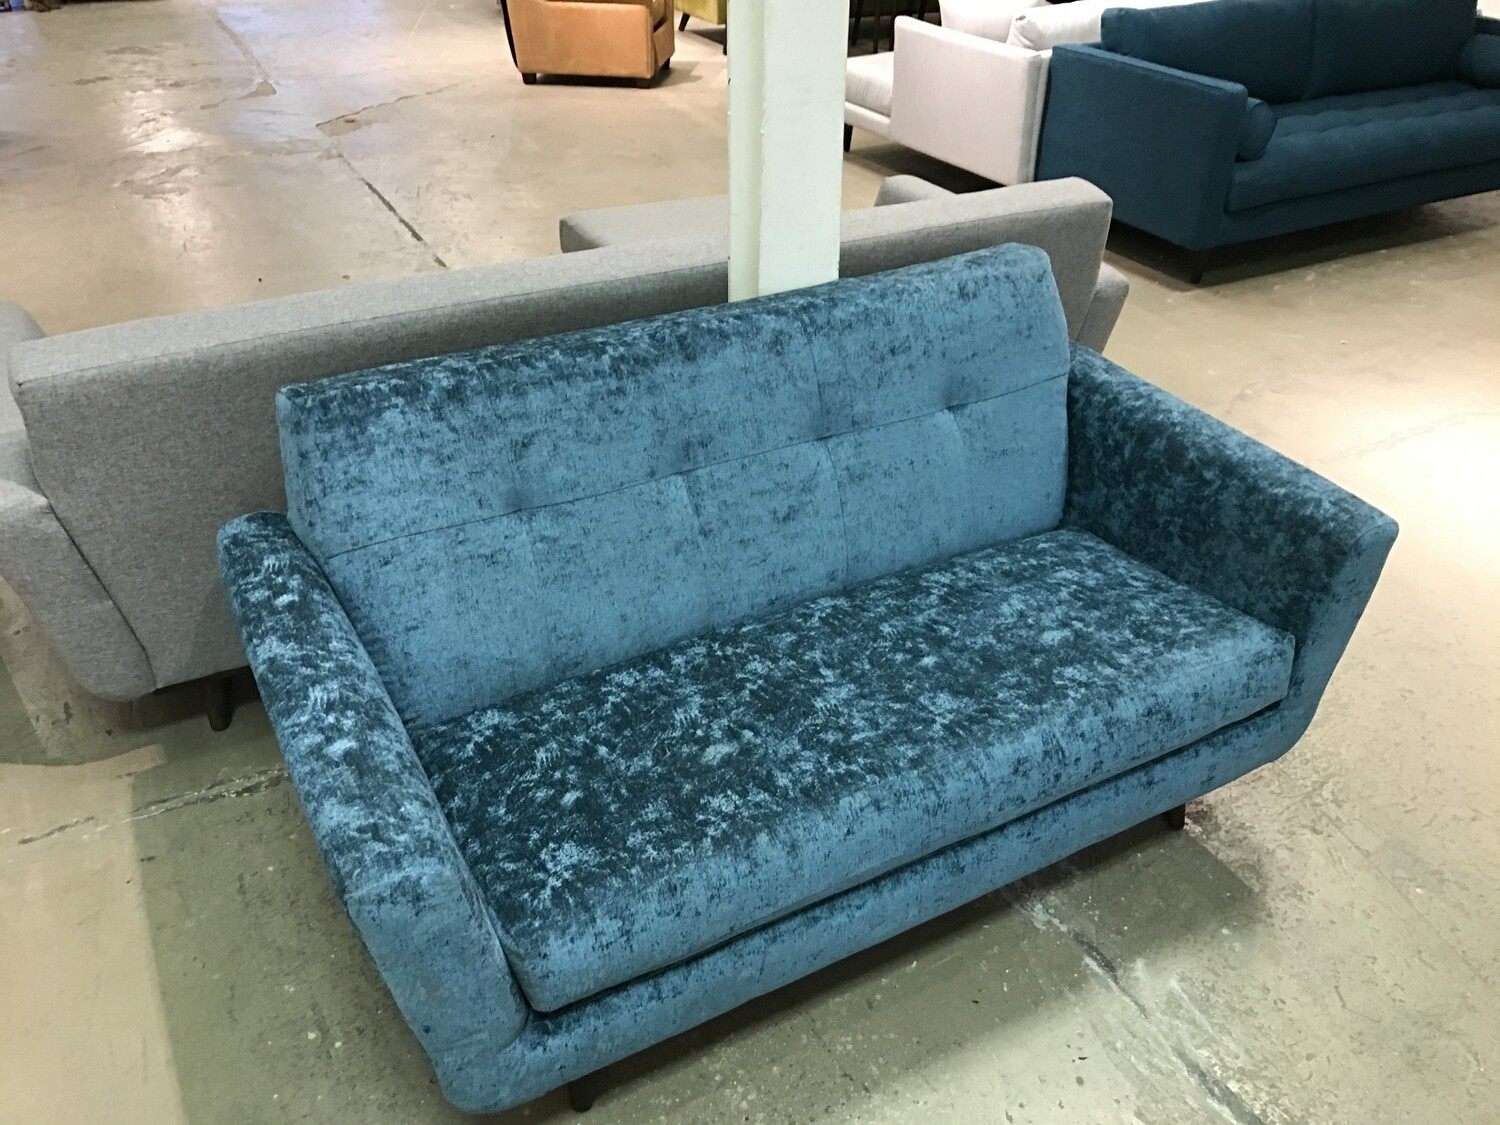 JB Hughes Apartment Sofa (Prime Peacock aka crushed velvet)